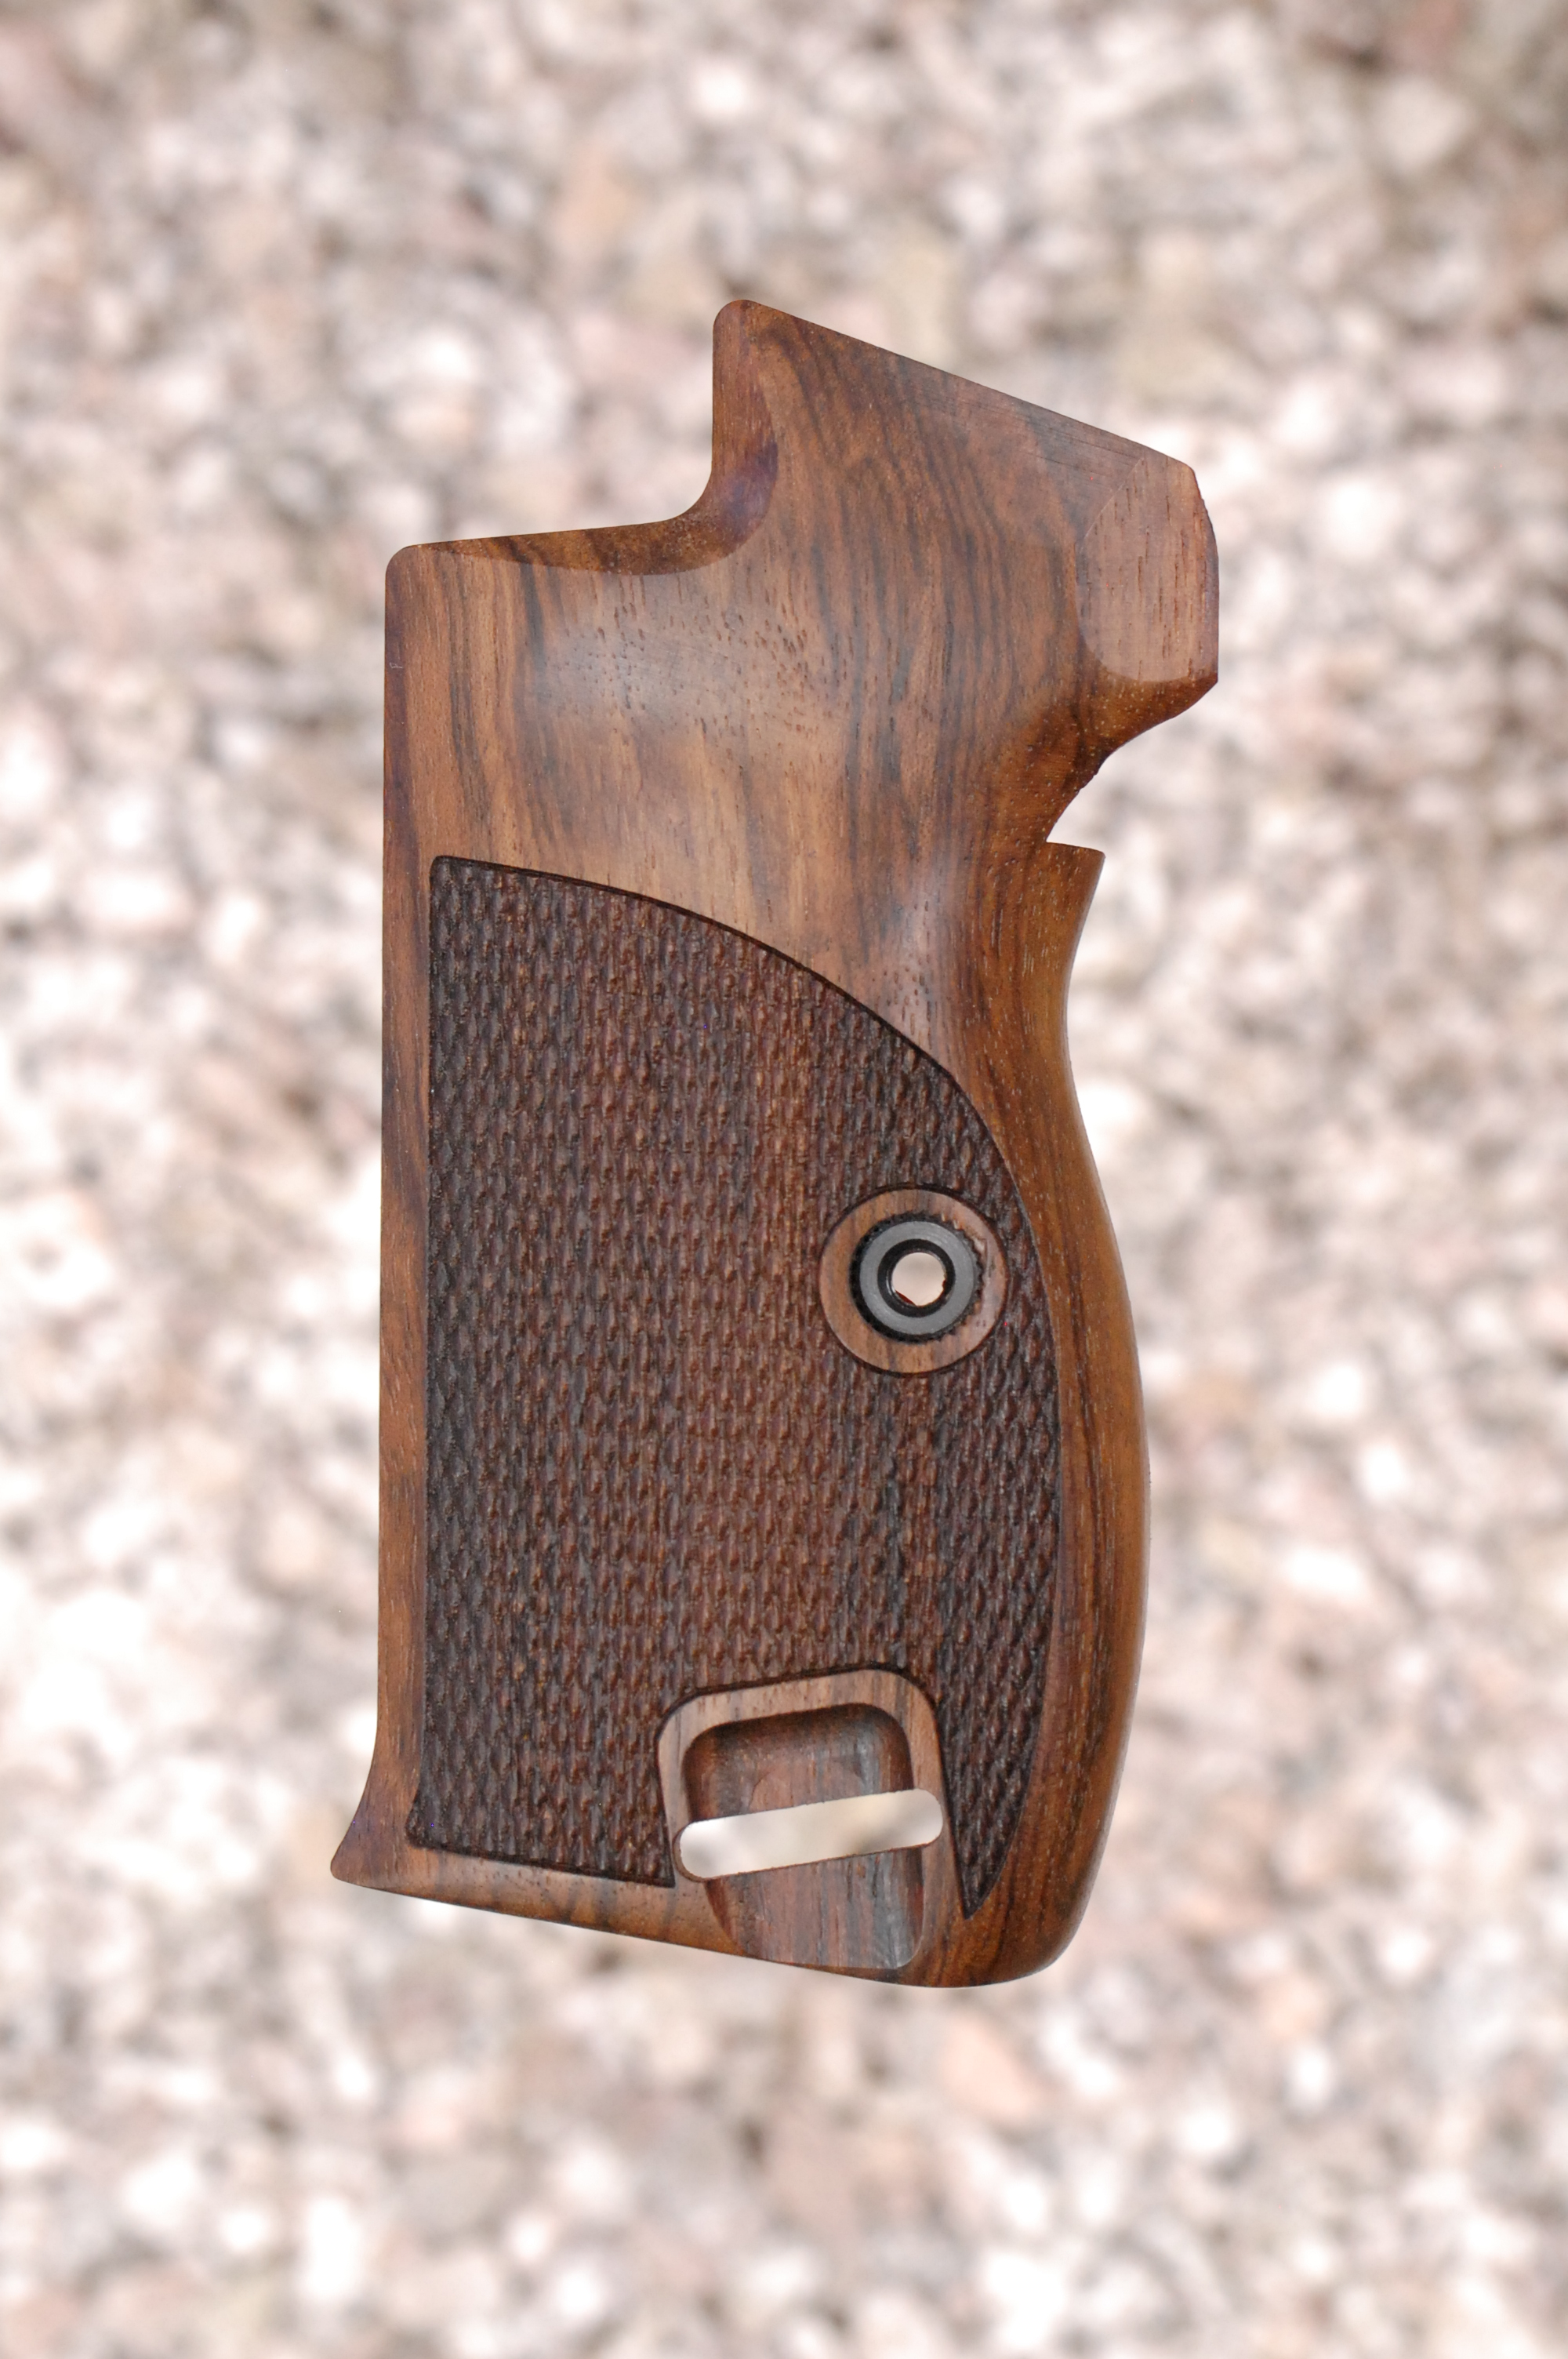 SIG P210 GRIPS, bottom m.r., heavy (checkered) - full size